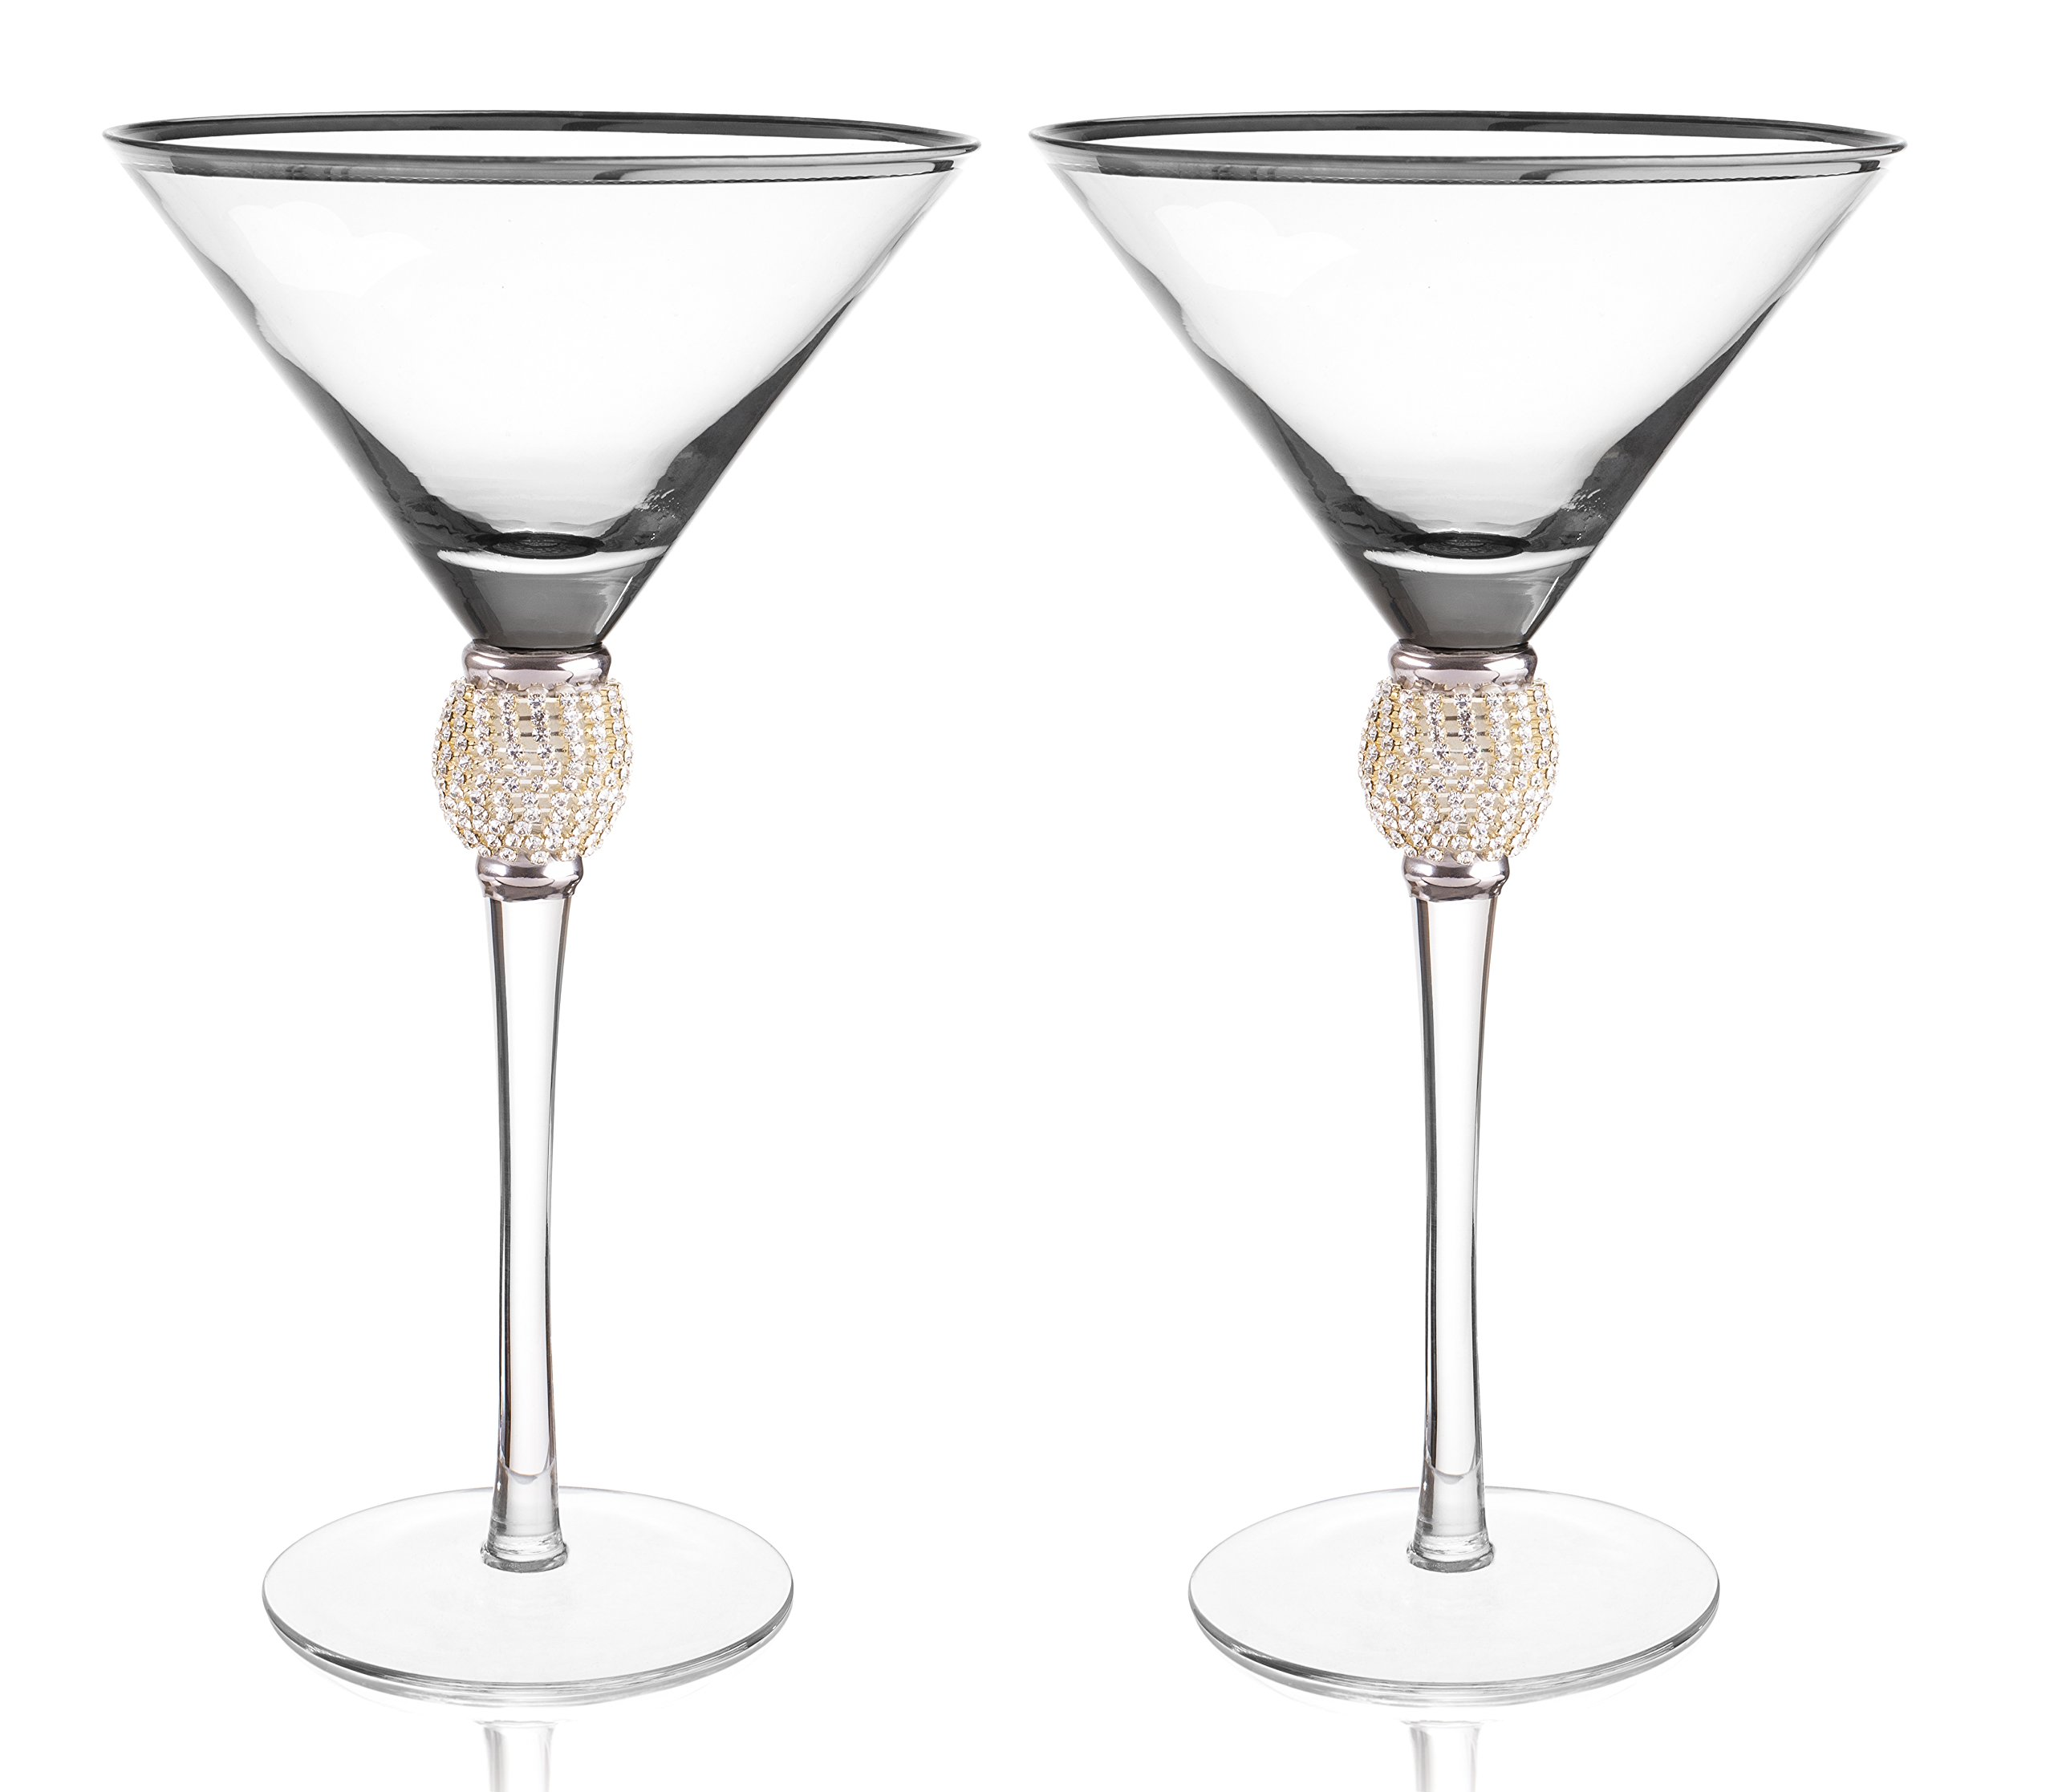 Trinkware Set of 2 Stemmed Martini Glasses - Rhinestone''DIAMOND'' Studded With Silver Rim - Long Stem, 12oz, 9-inches Tall – Elegant Glassware And Stemware